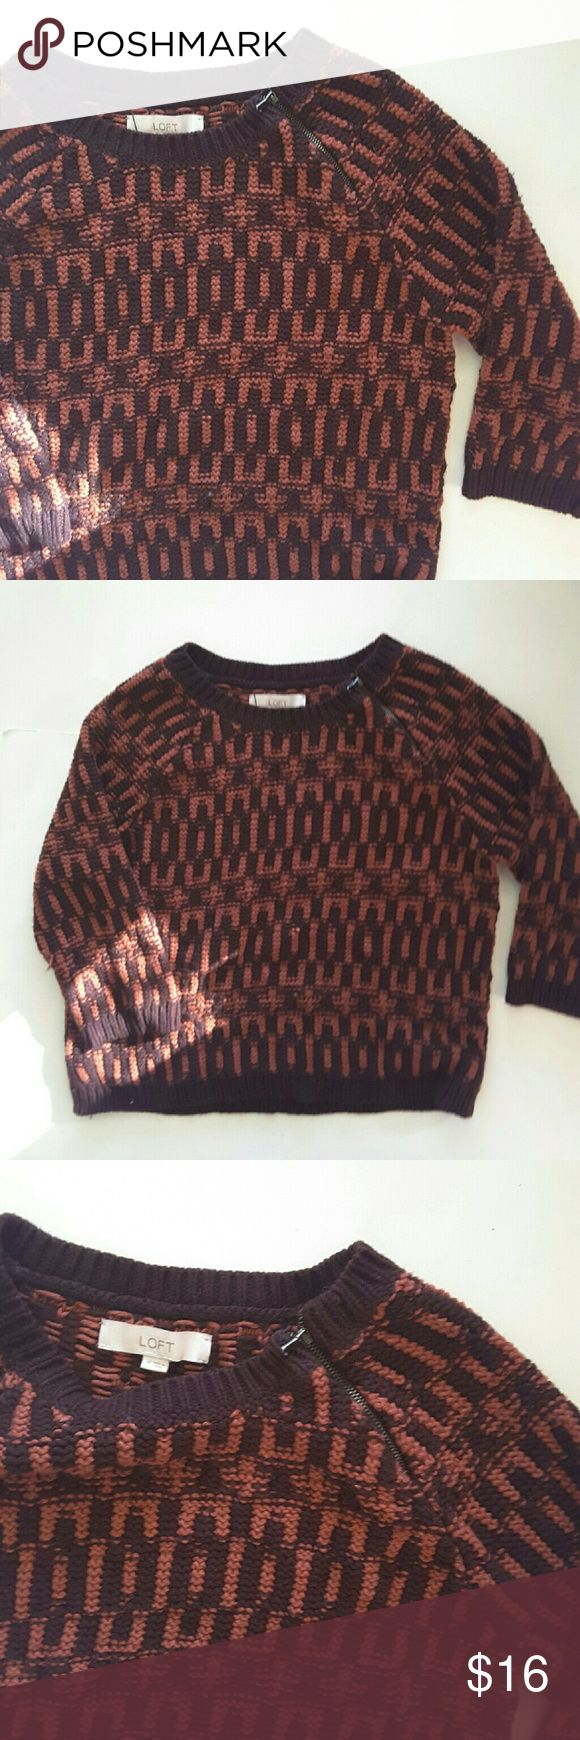 Ann Taylor loft Kinda  oversized knit sweater funcanal zipper detail on shoulder shoulder  are sleeves are longer than middle length but not yet 3/4. 18 inches from armpit to armpit 20 inches from shoulder to bottom of sweater  11.5 inches from armpit to the sleeve LOFT Sweaters